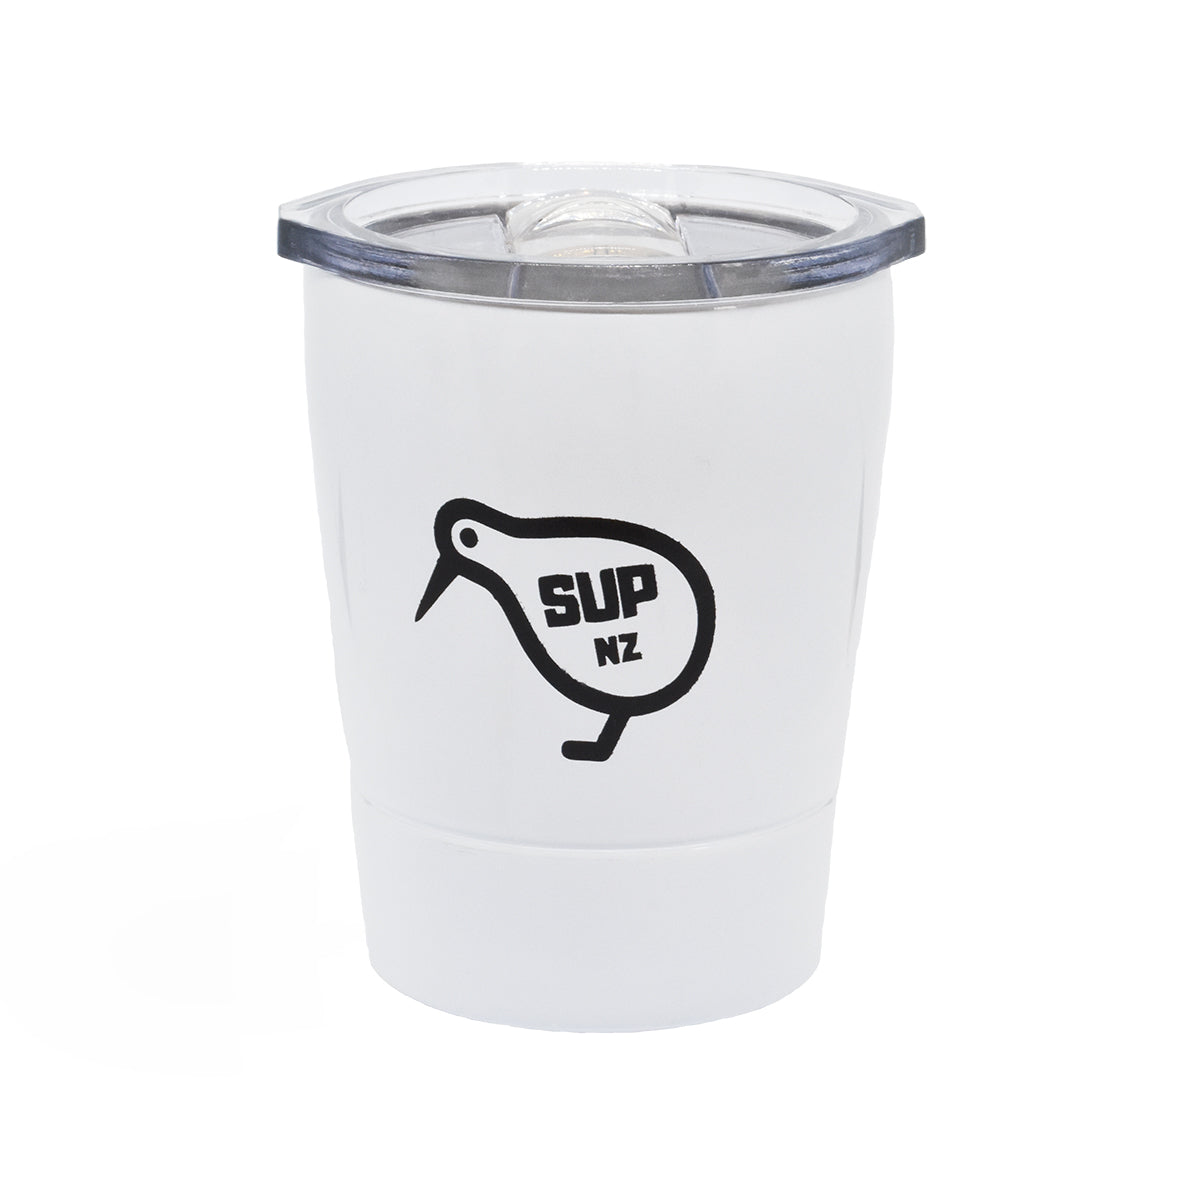 8oz stainless steel reusable cup white